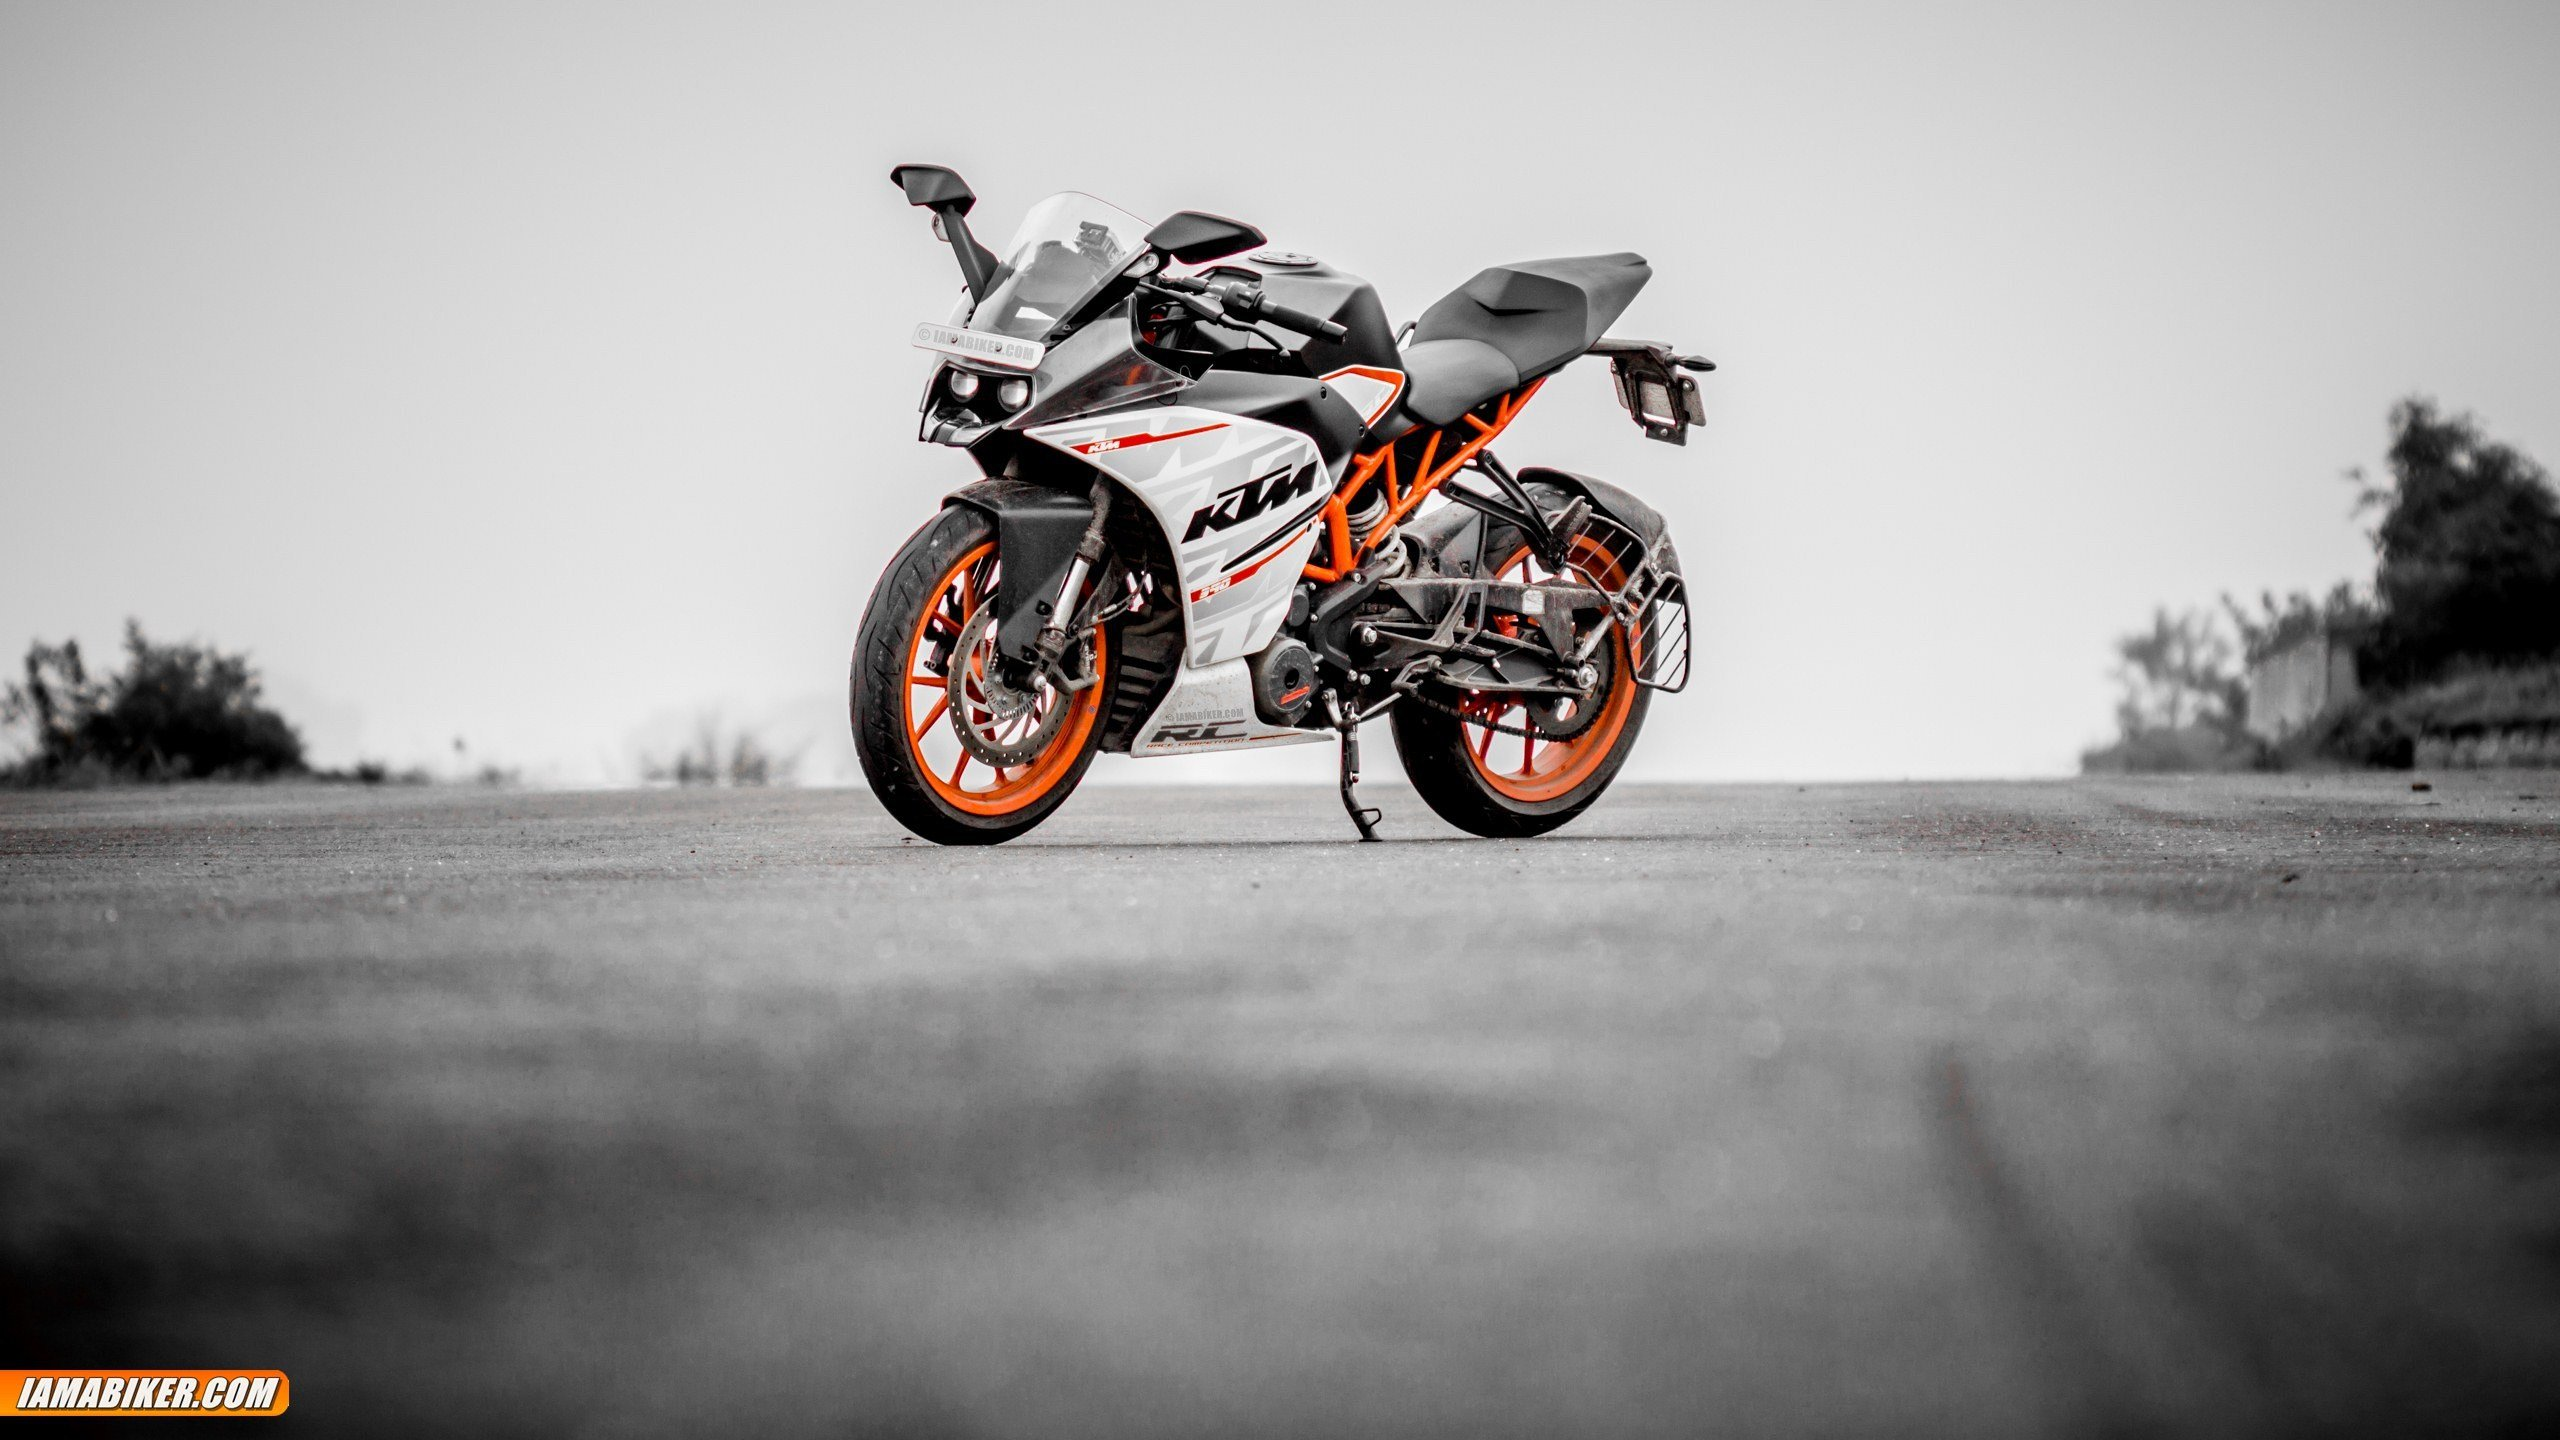 Background Images For Editing Hd Bike: KTM Duke Bike HD Wallpapers